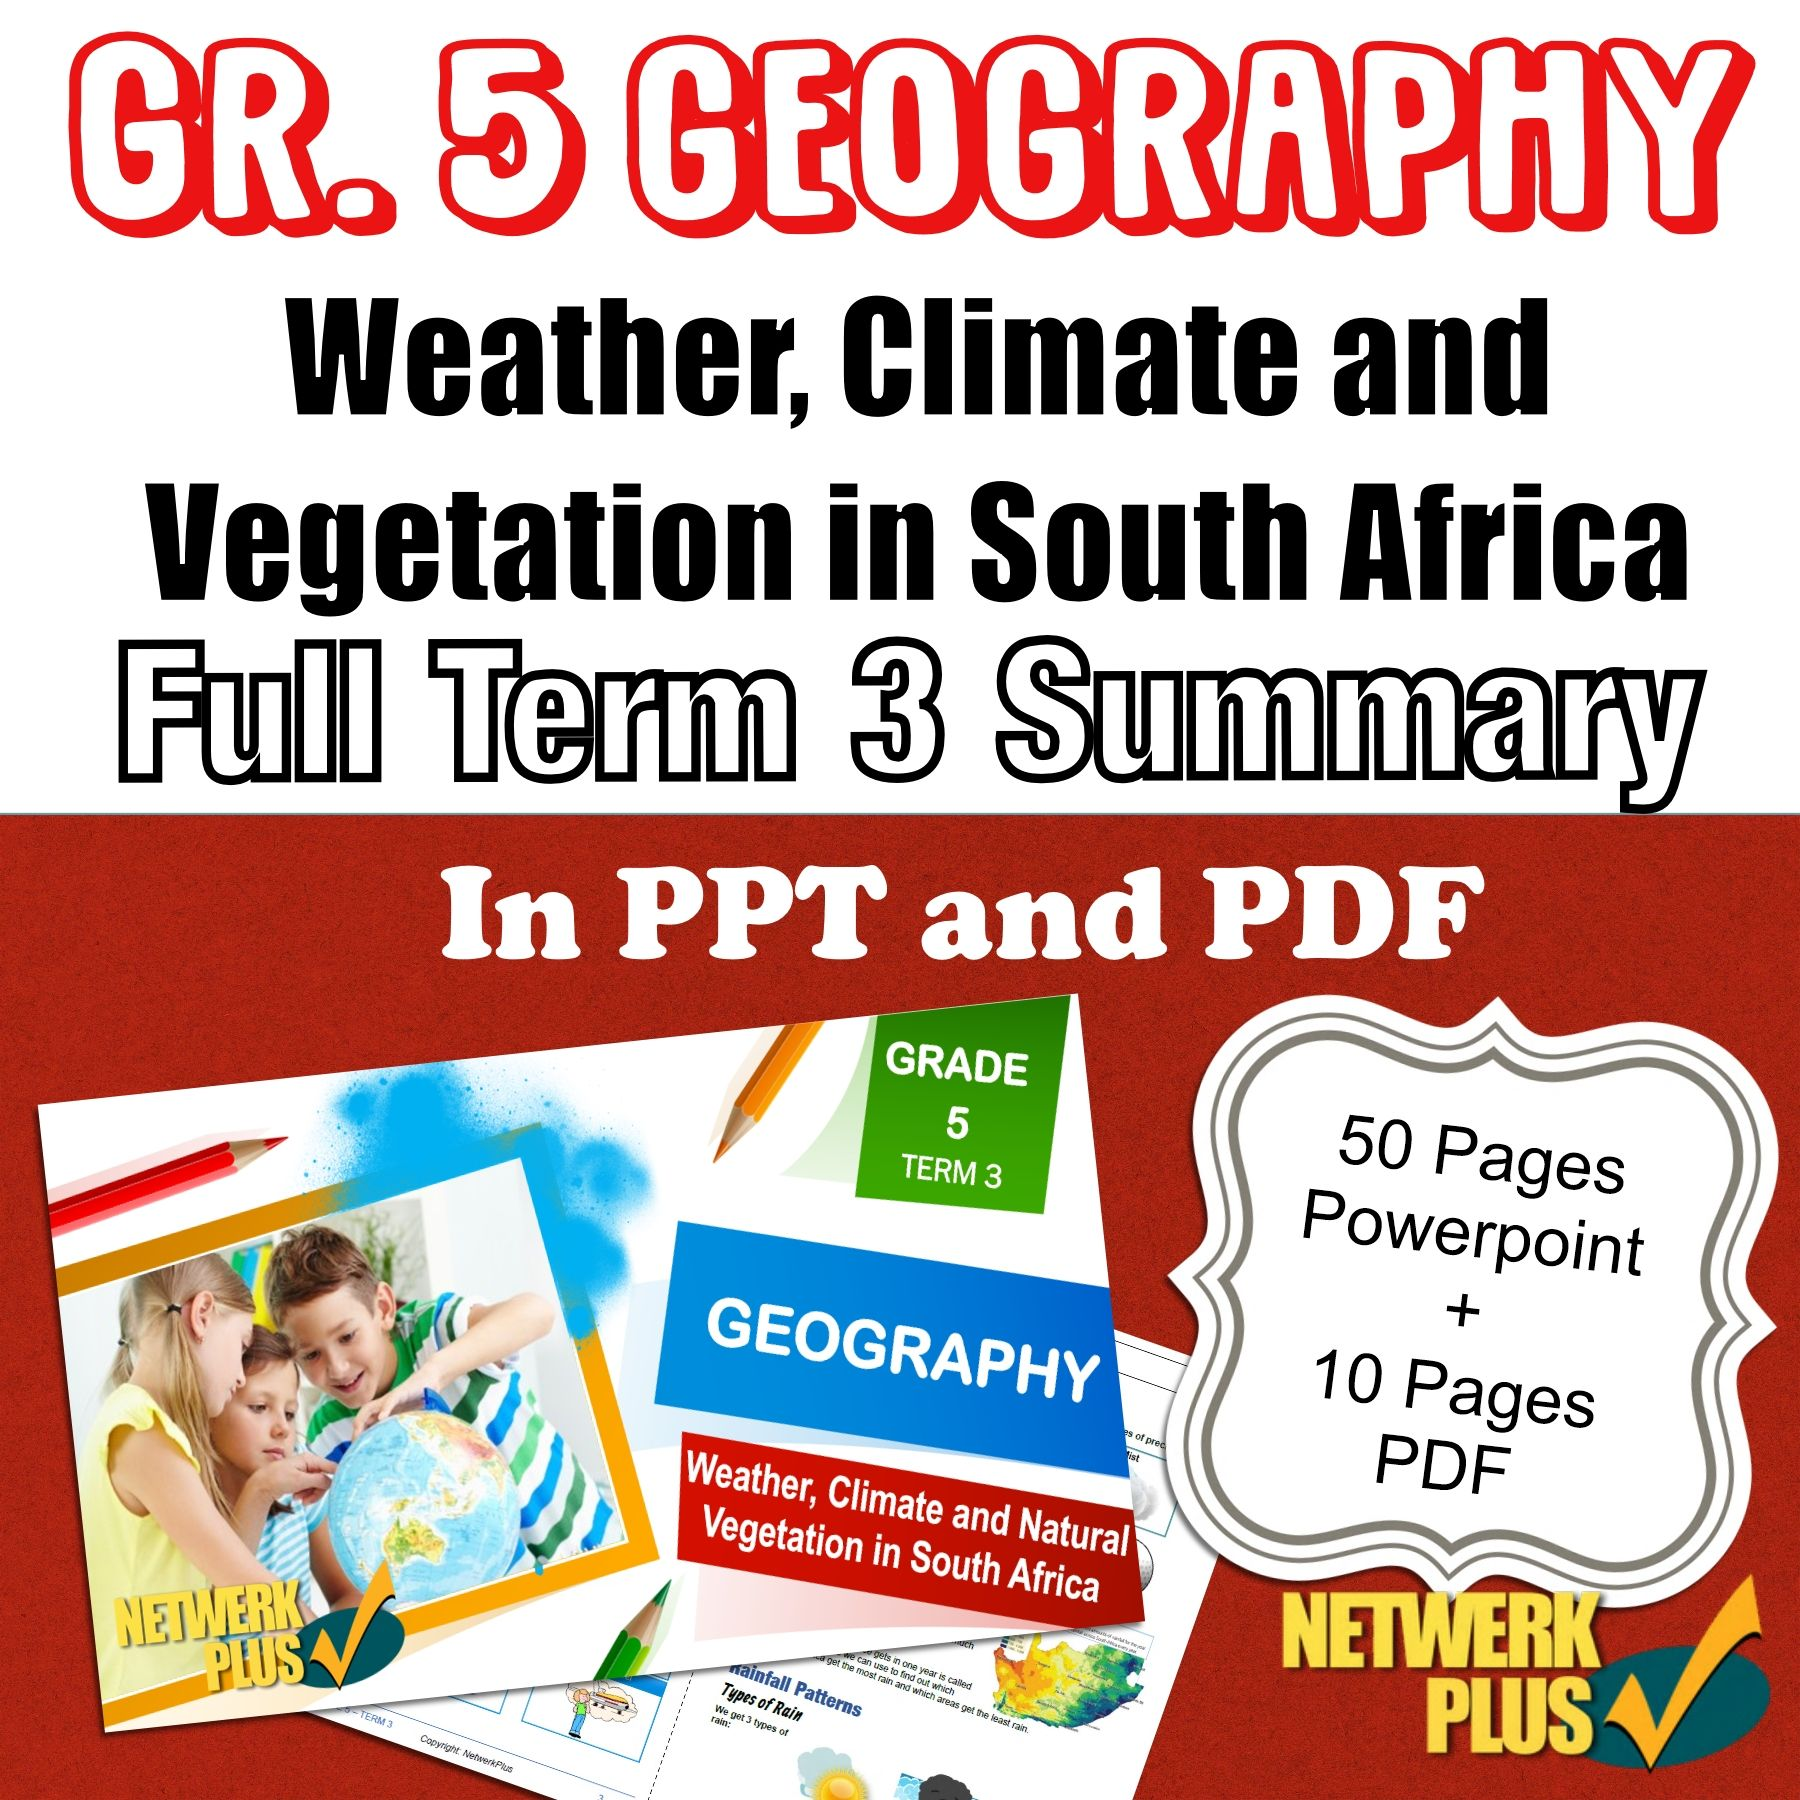 medium resolution of This pack contains a full summary of Grade 5 Term 3 Geography work with a  PowerPoint (50 pages) and PDF (1…   Remarks for report card